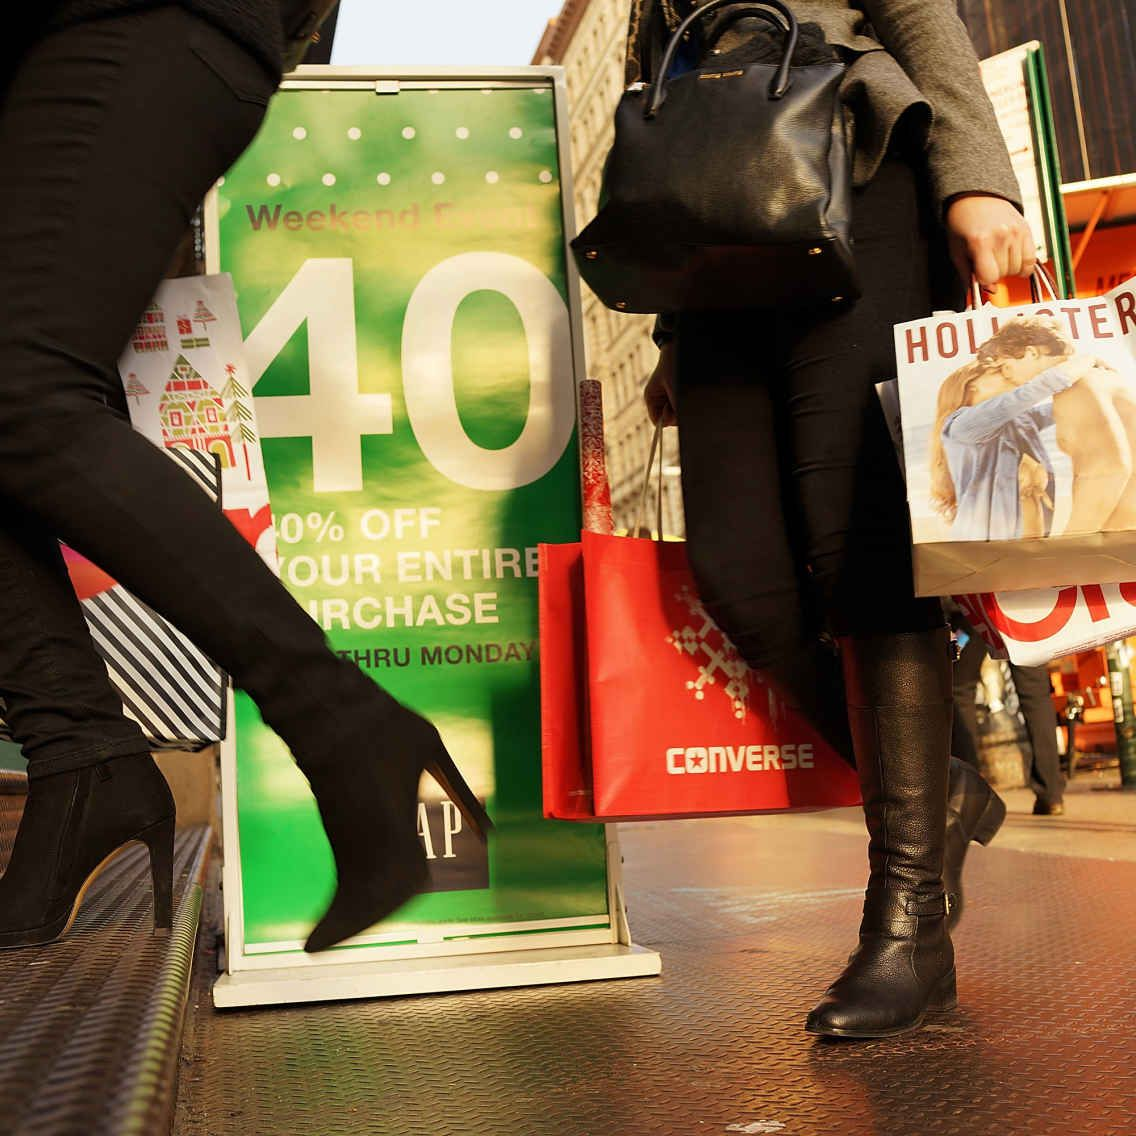 The Best Holiday Deals Will Hit Before Black Friday This Year. To nab the best discounts, plan to start shopping a little earlier this holiday season.